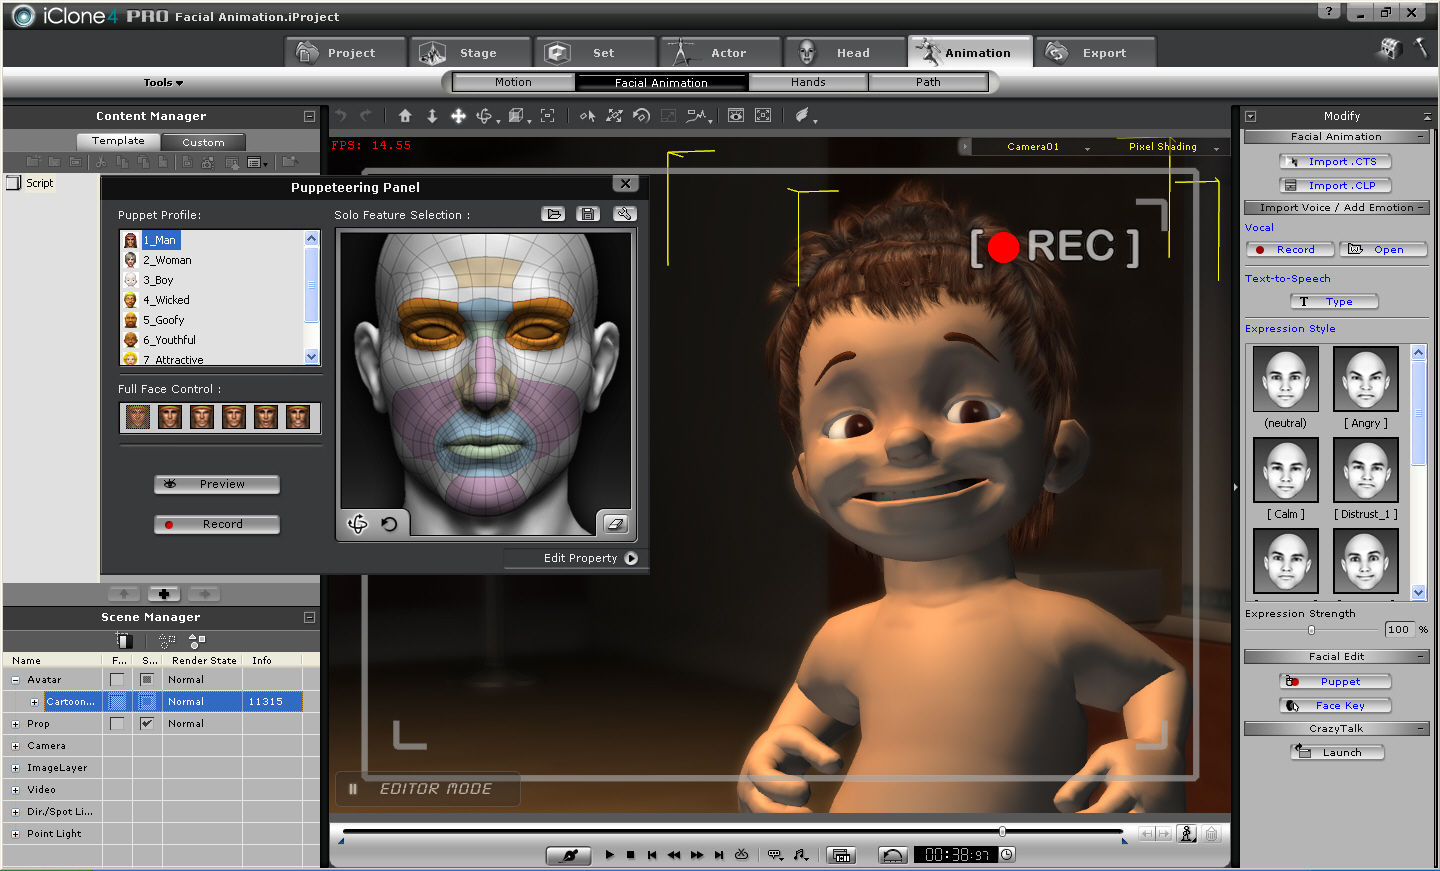 iClone4 introduces new features that combine video production with 3D real-time animation.